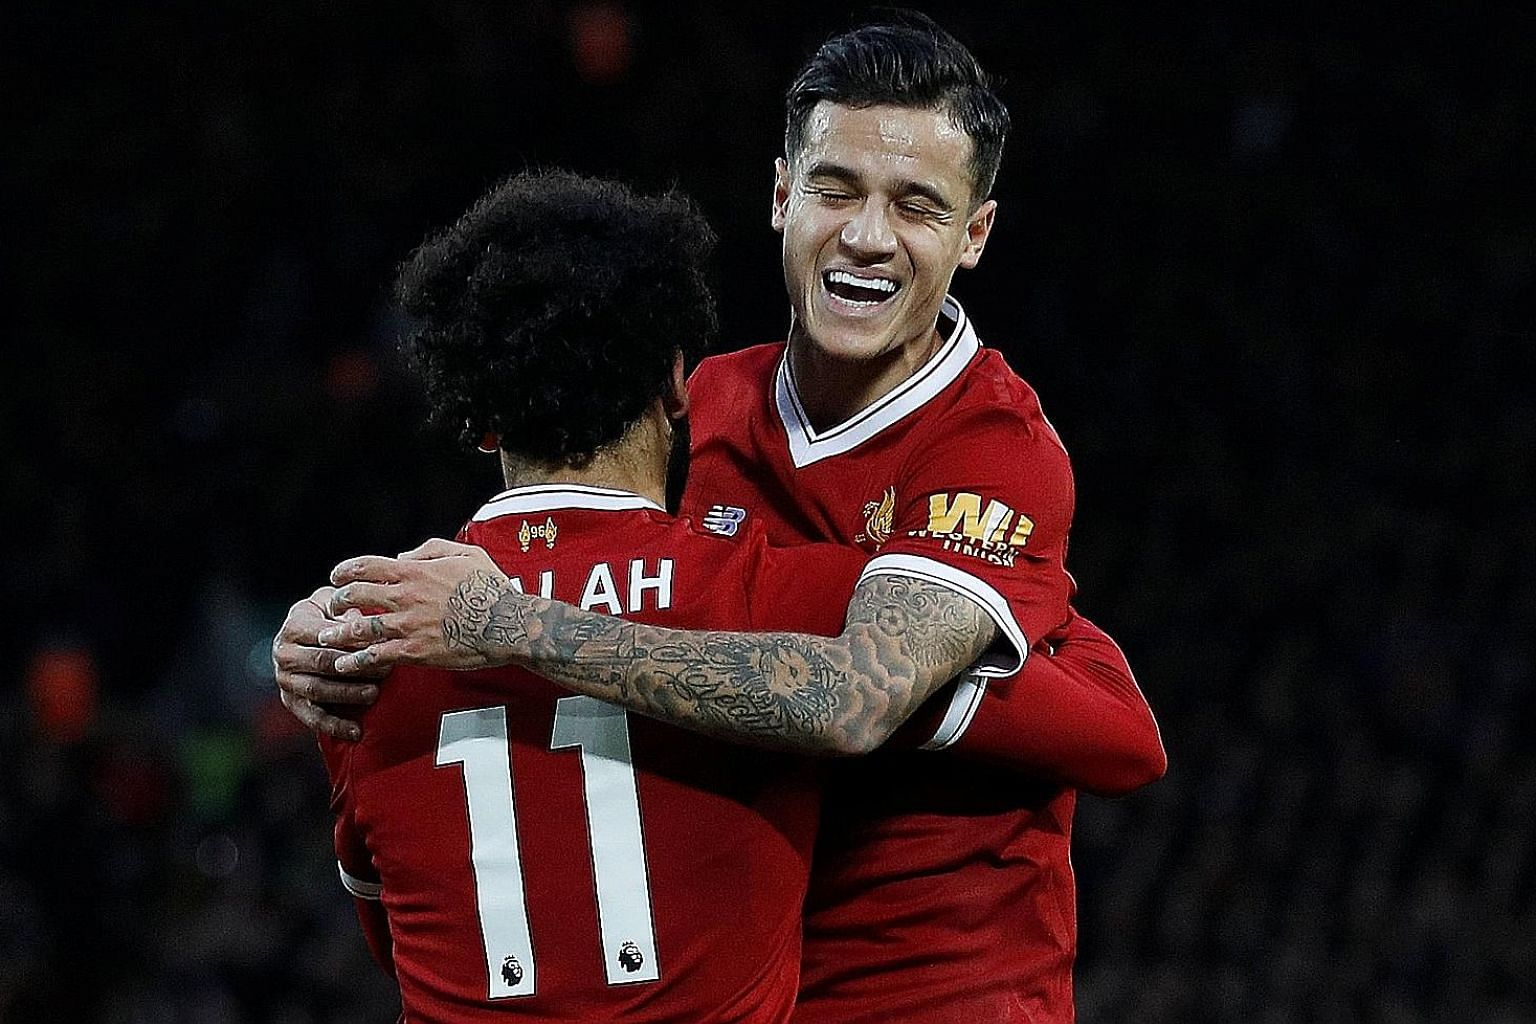 Liverpool's top scorer Mohamed Salah celebrates with top creator Philippe Coutinho after a goal against Southampton in the Premier League in November. Liverpool will not find it easy to replace him, with Leicester forward Riyad Mahrez and Monaco forw